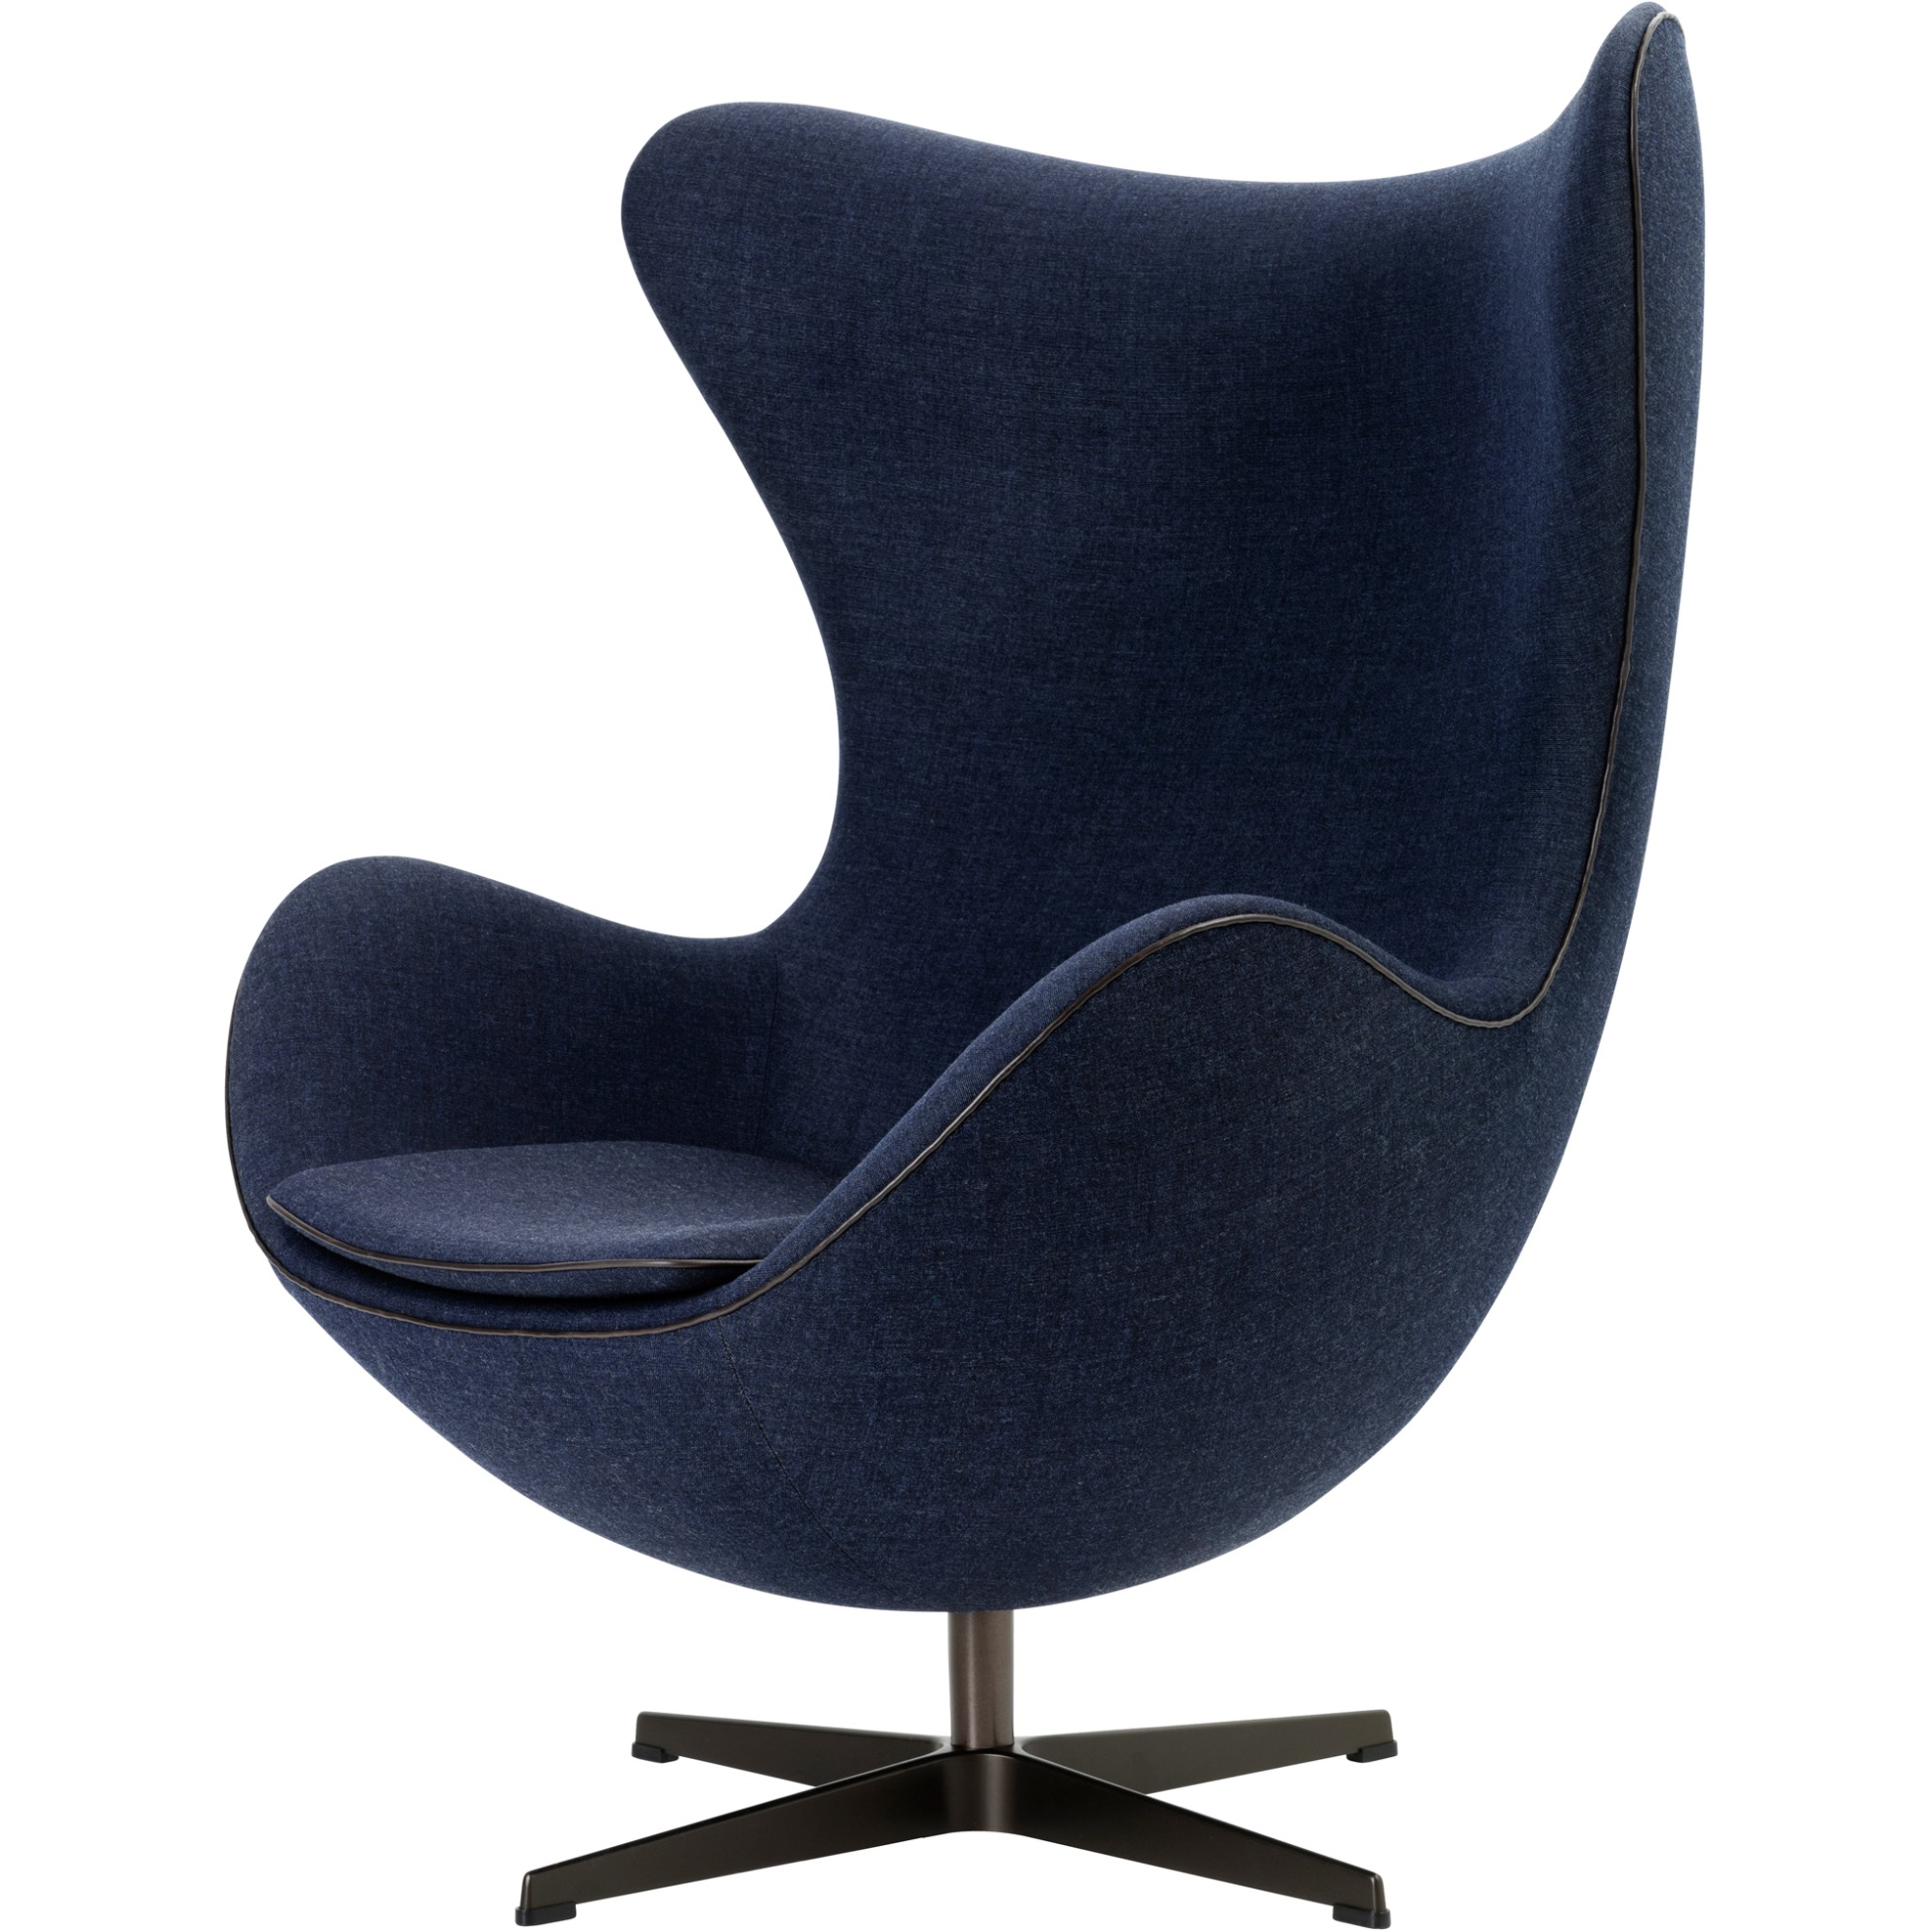 "the egg™ special edition ""fritz hansen's choice"", Hause deko"